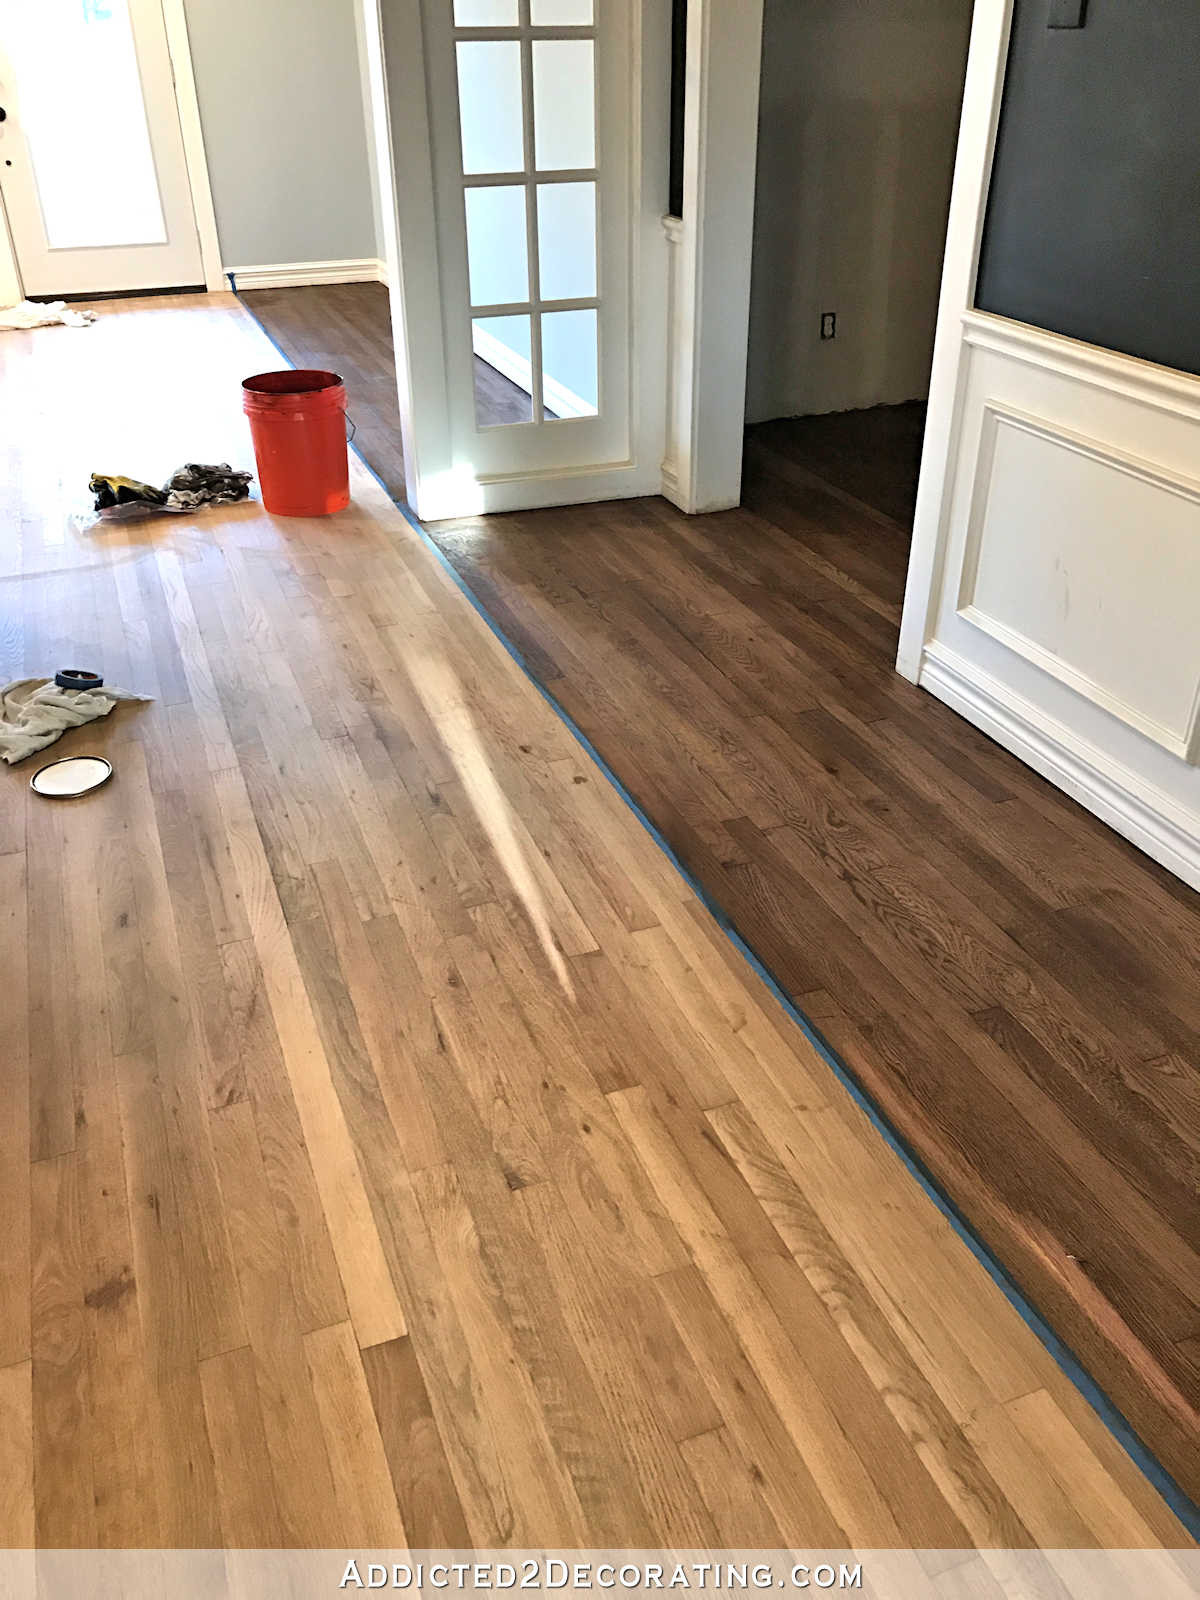 refinishing red oak hardwood floors of adventures in staining my red oak hardwood floors products process in staining red oak hardwood floors 6 stain on partial floor in entryway and music room